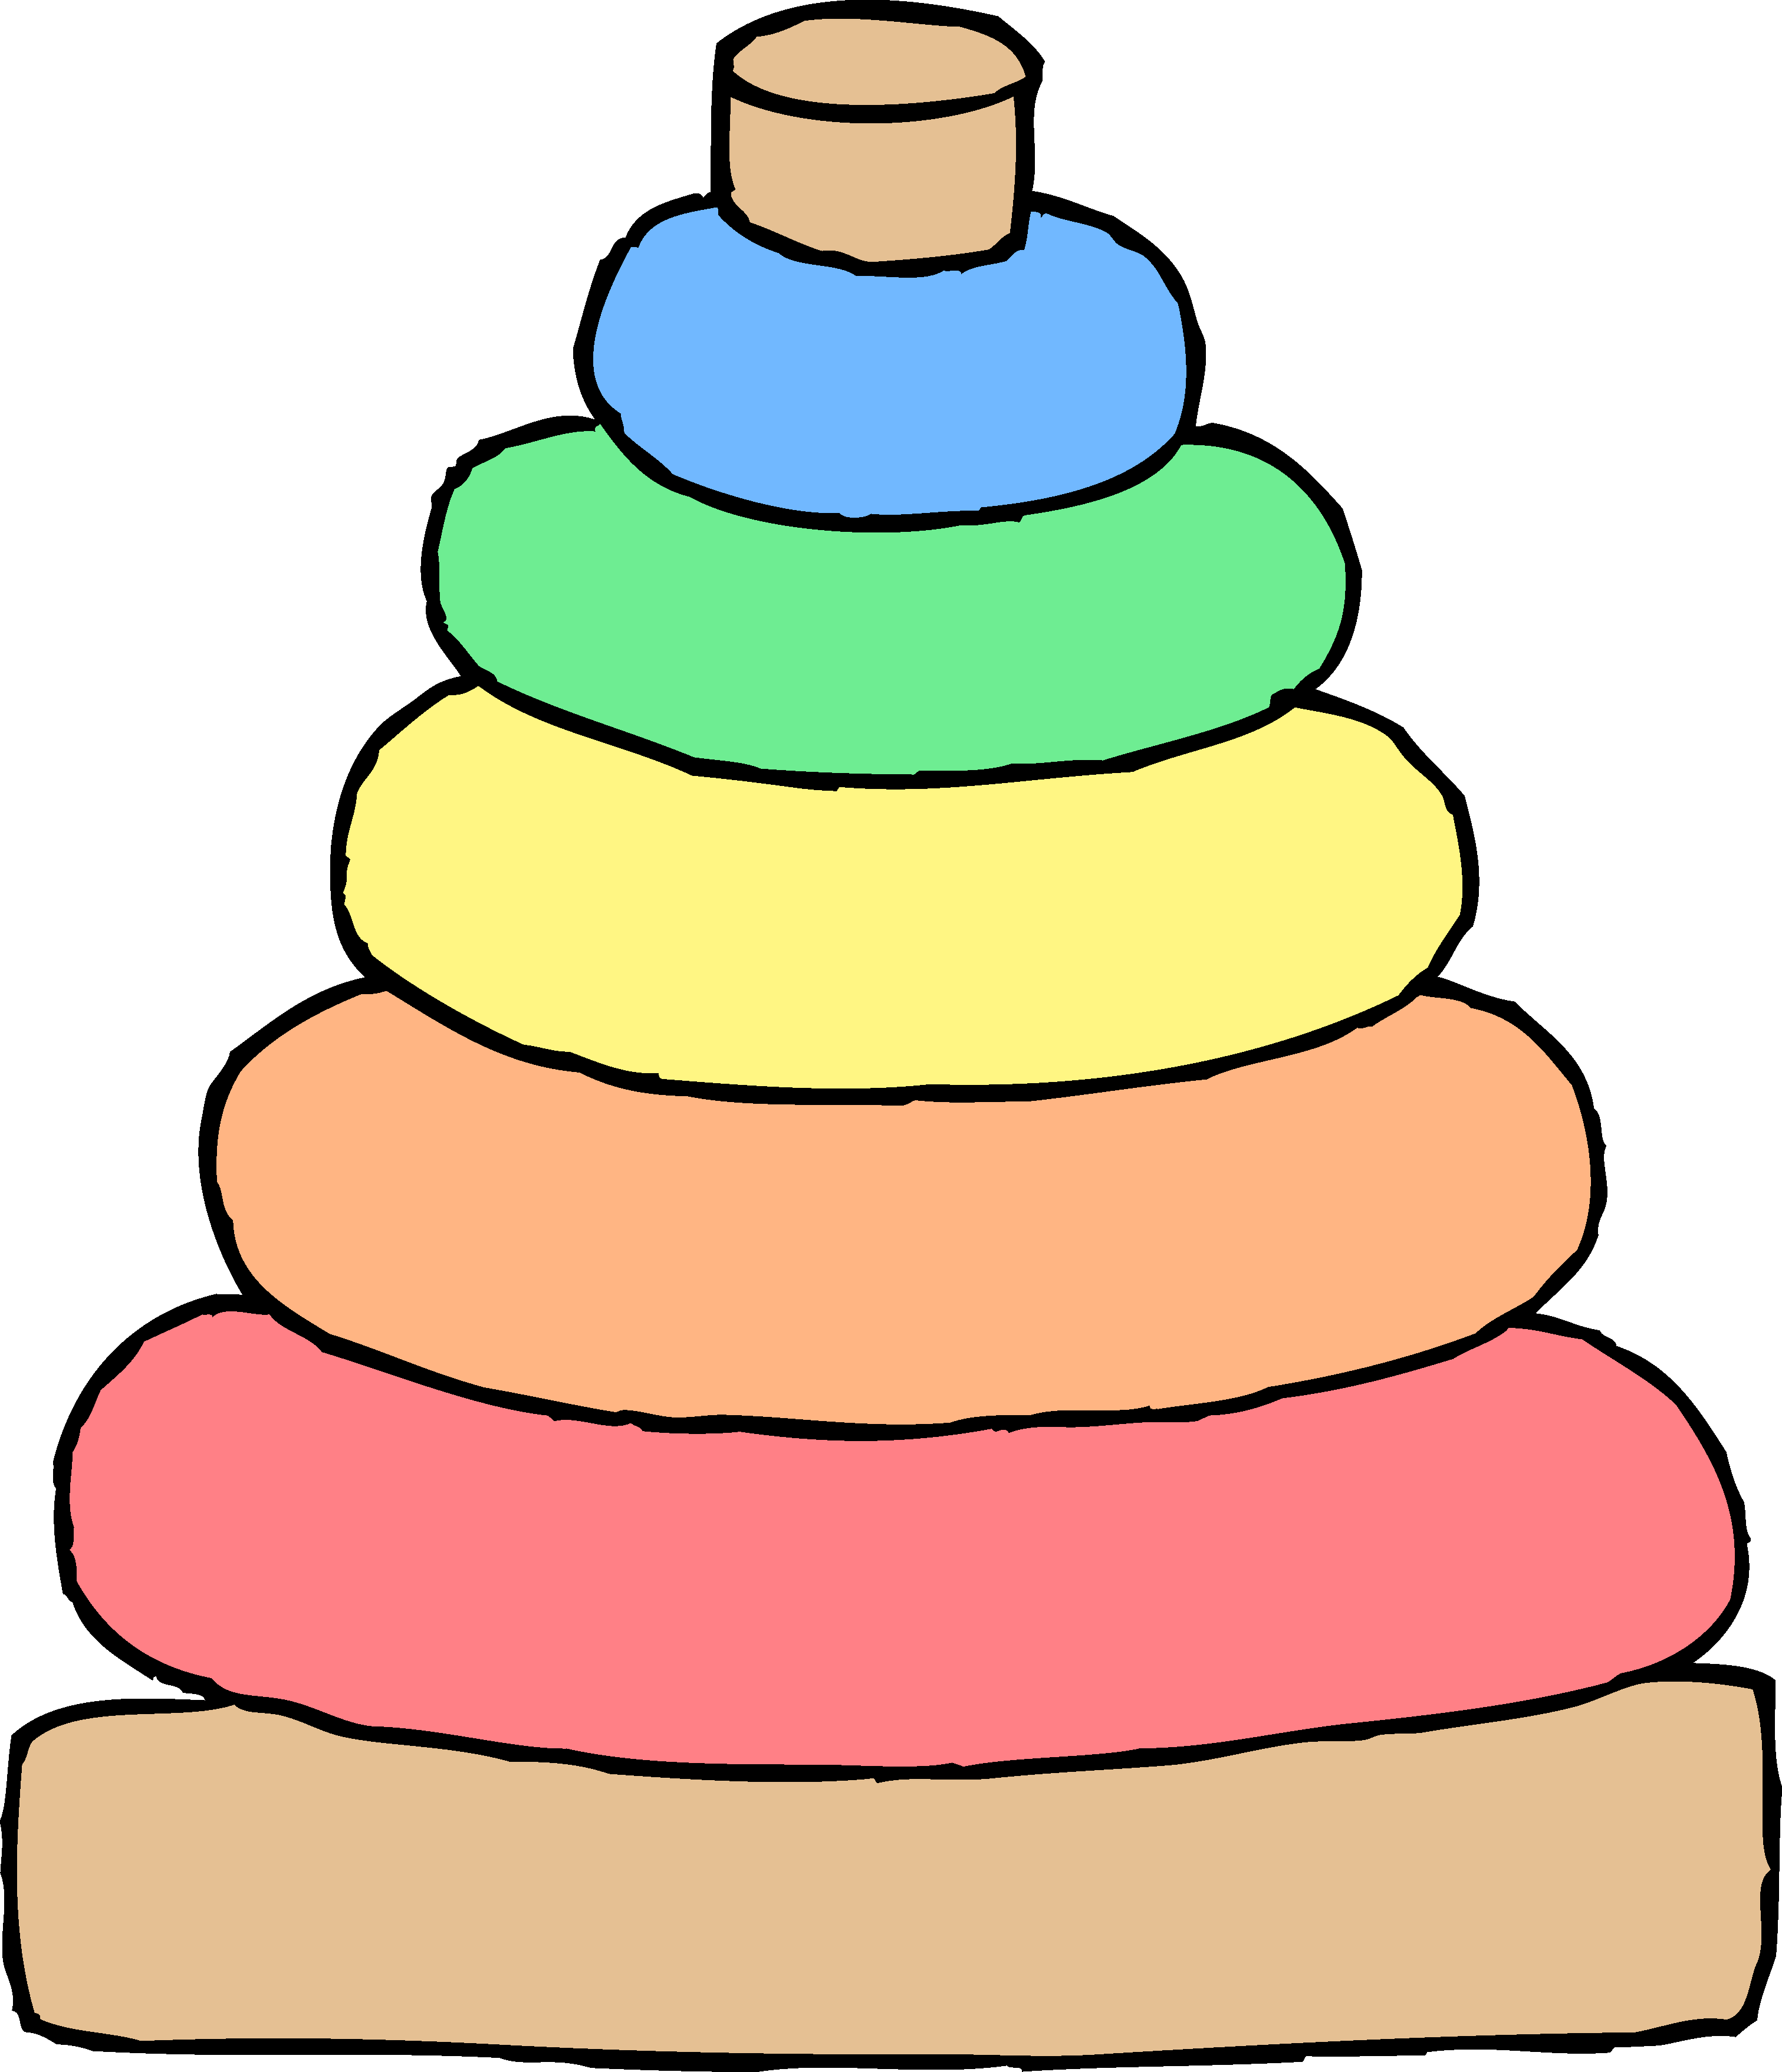 Ball clipart baby toy Toy Stacking Free Baby Art